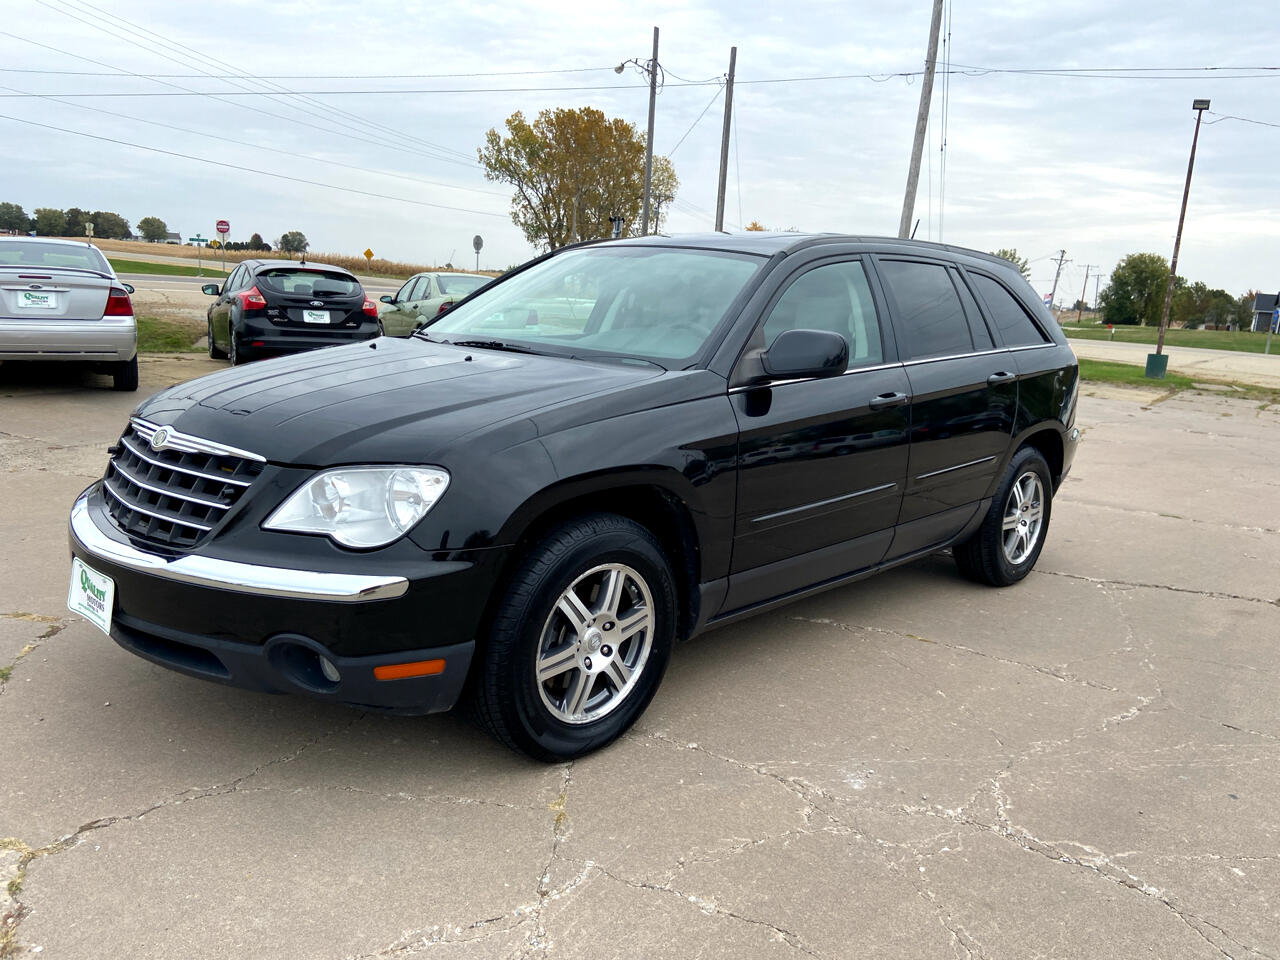 Chrysler Pacifica 4dr Wgn Touring AWD 2007